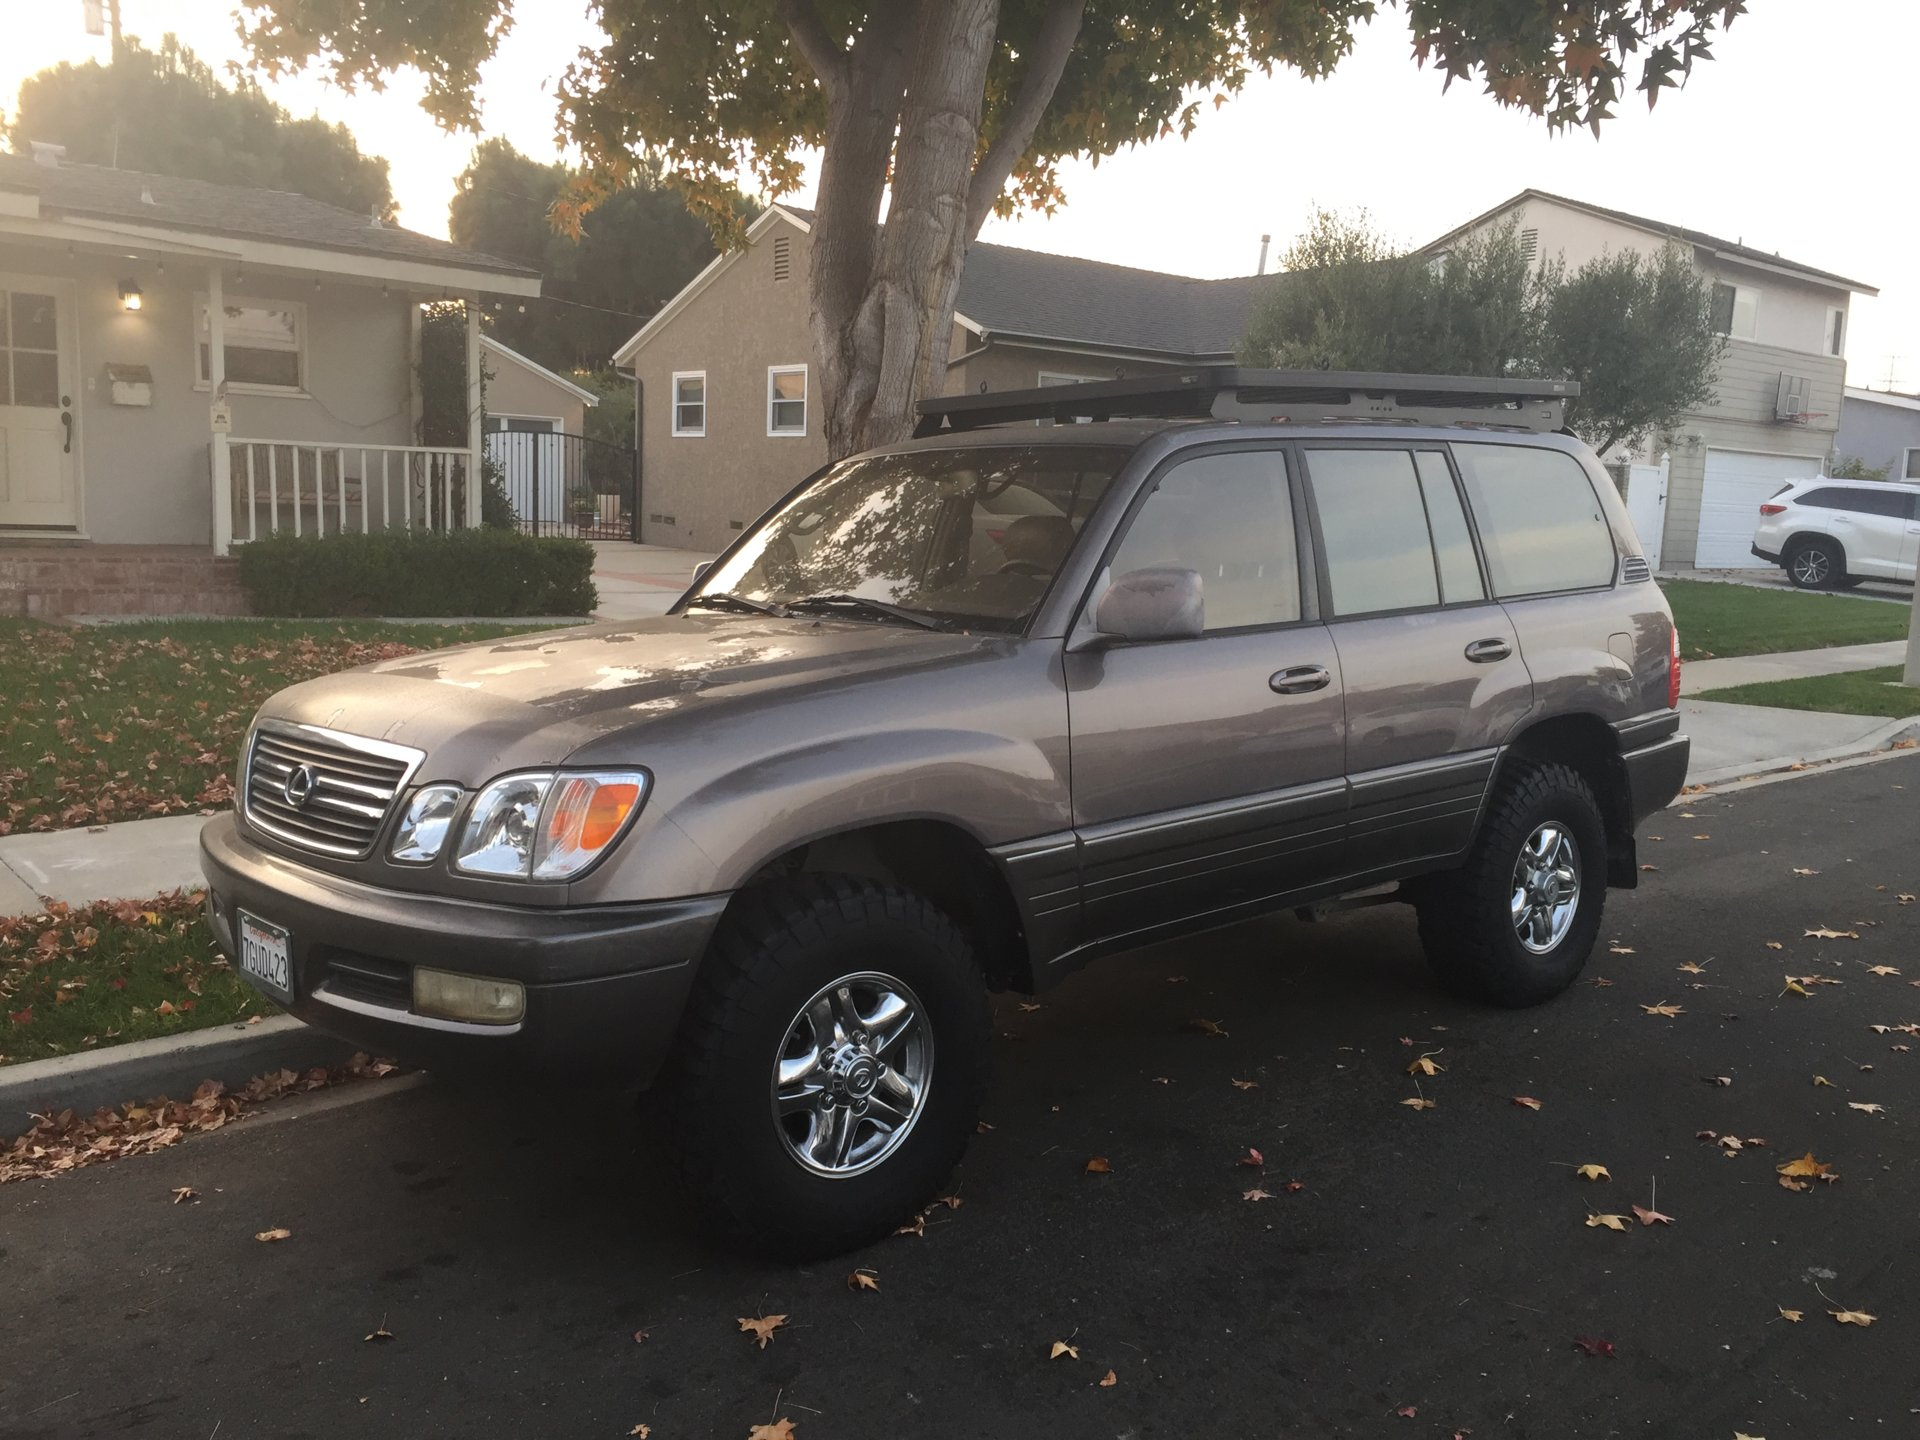 for sale 1999 lexus lx470 trd supercharger needs engine work ih8mud forum 1999 lexus lx470 trd supercharger